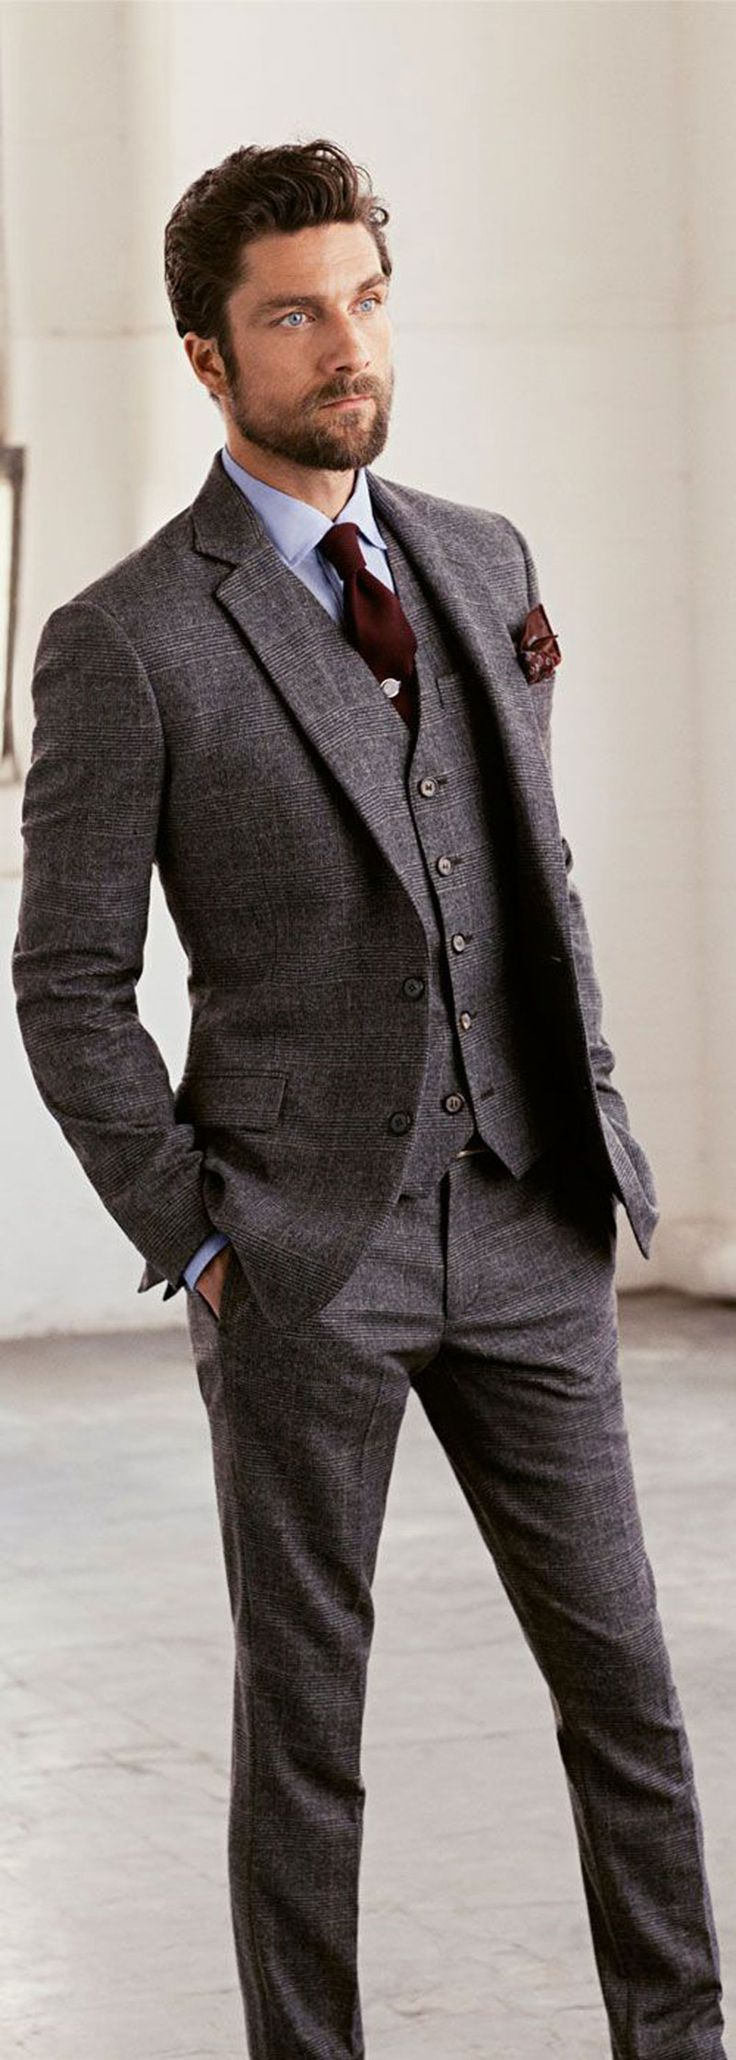 wedding ideas by colour: grey wedding suits - alternative fabric | chwv JJBAIMO